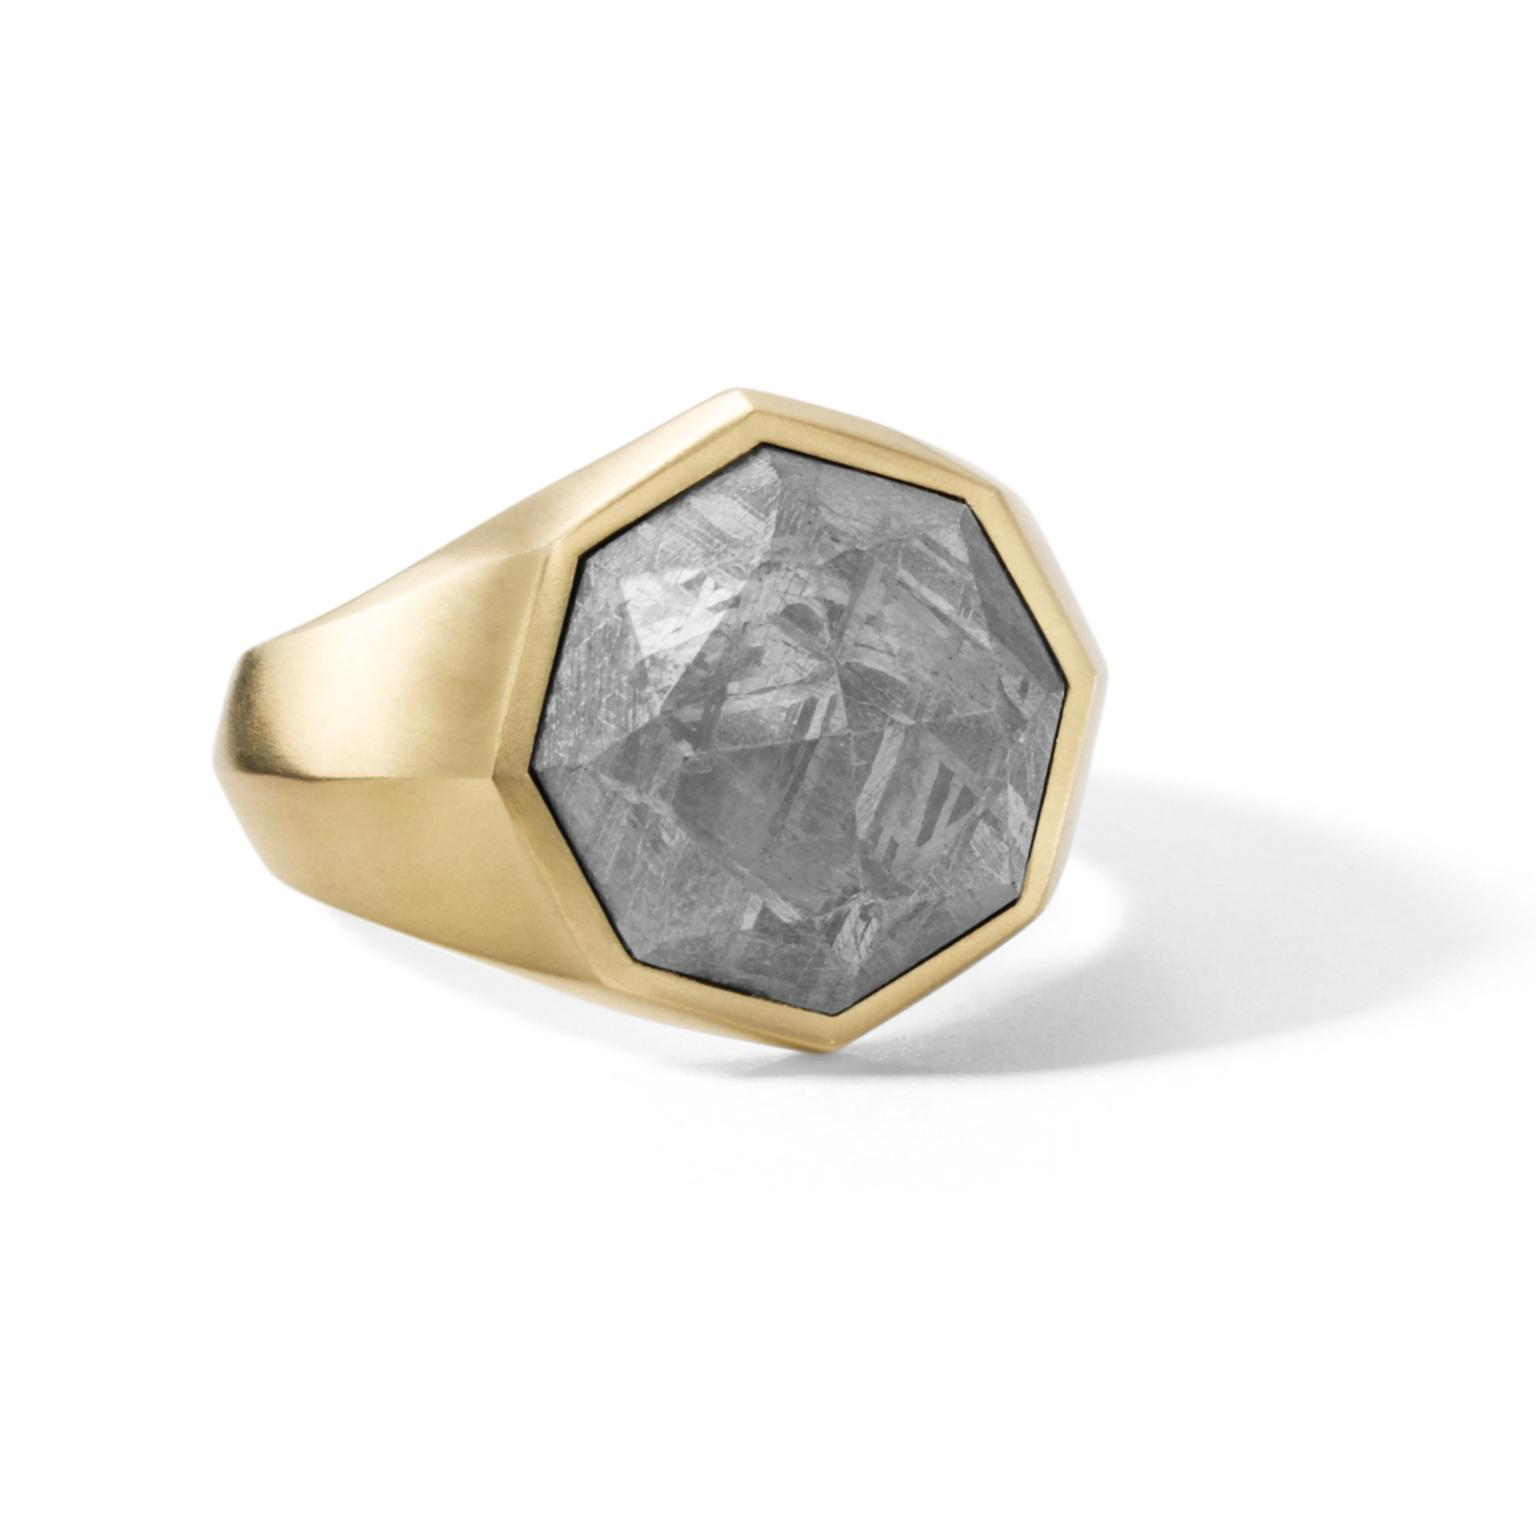 David-Yurman-Meteorite-ring-zoom